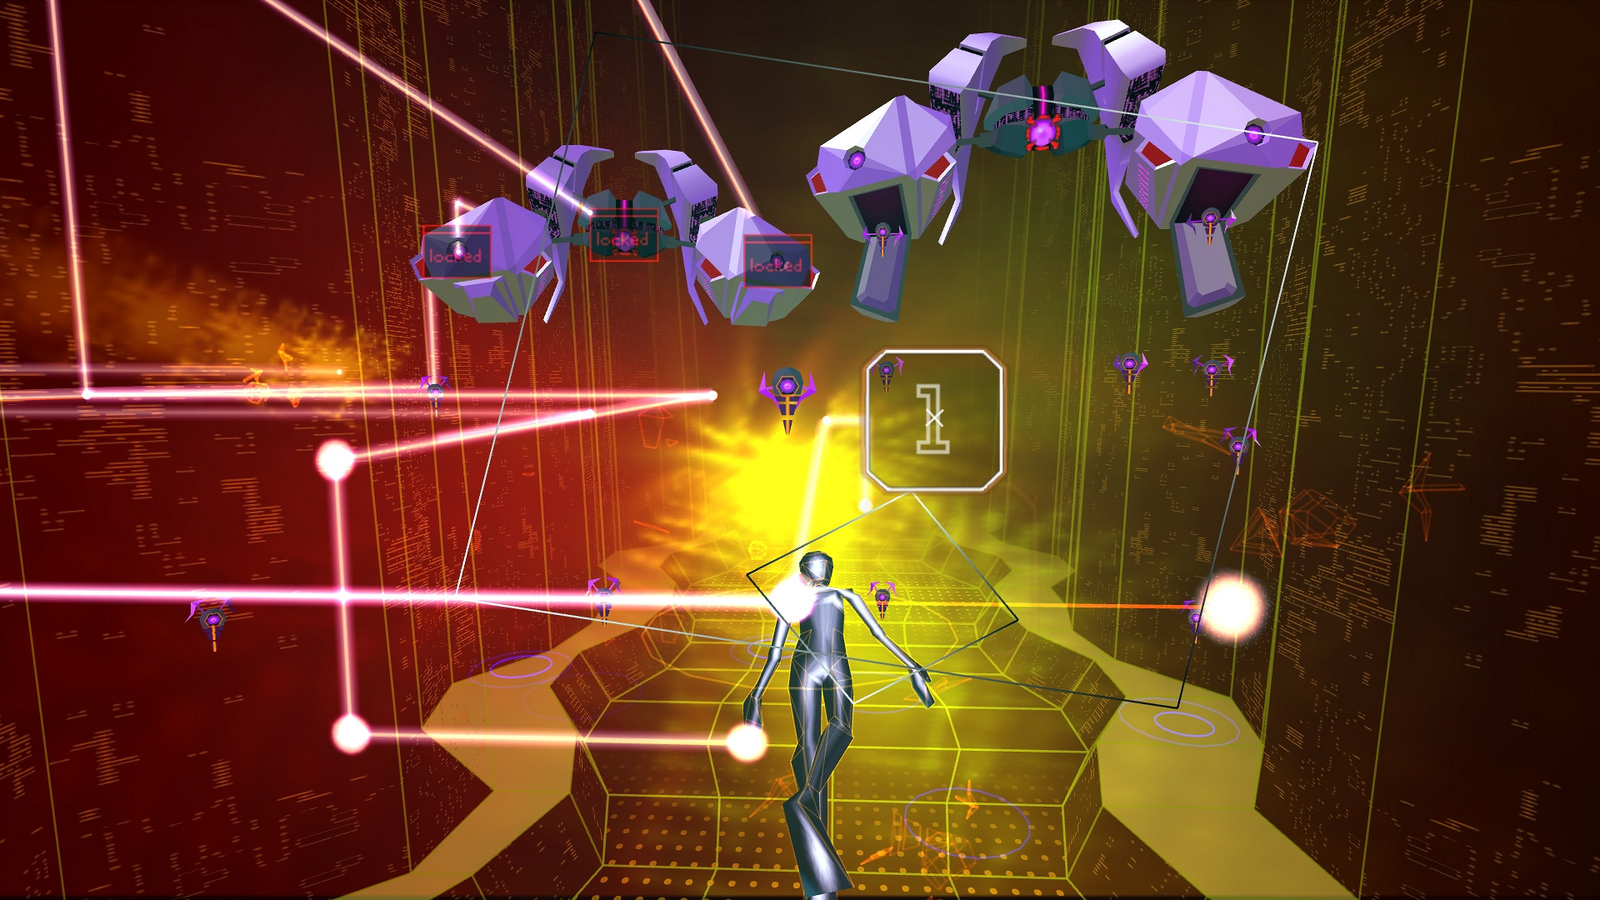 Rez Infinite remake is coming to PS4 and PS:VR